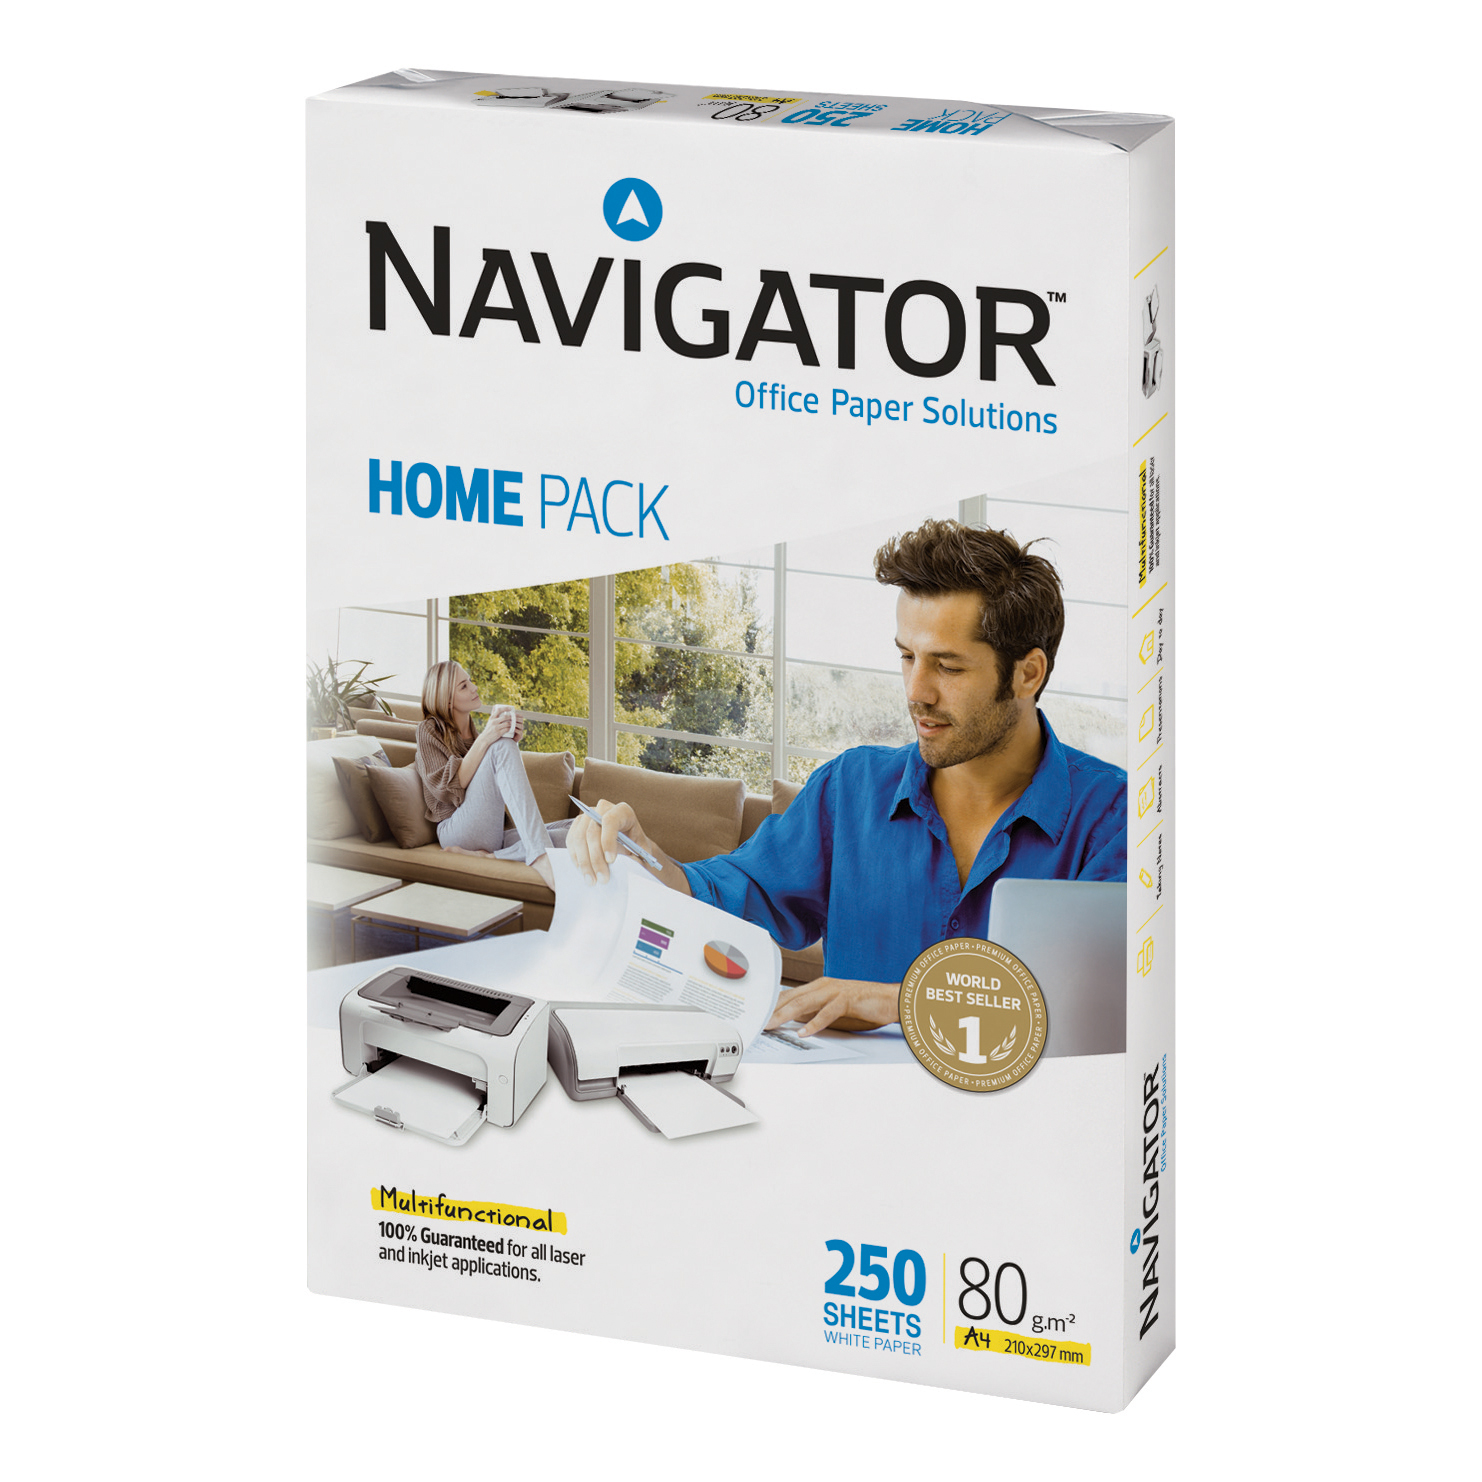 Navigator Homepack Paper Multifunctional 80gsm A4 White Ref 127415 250 Sheets